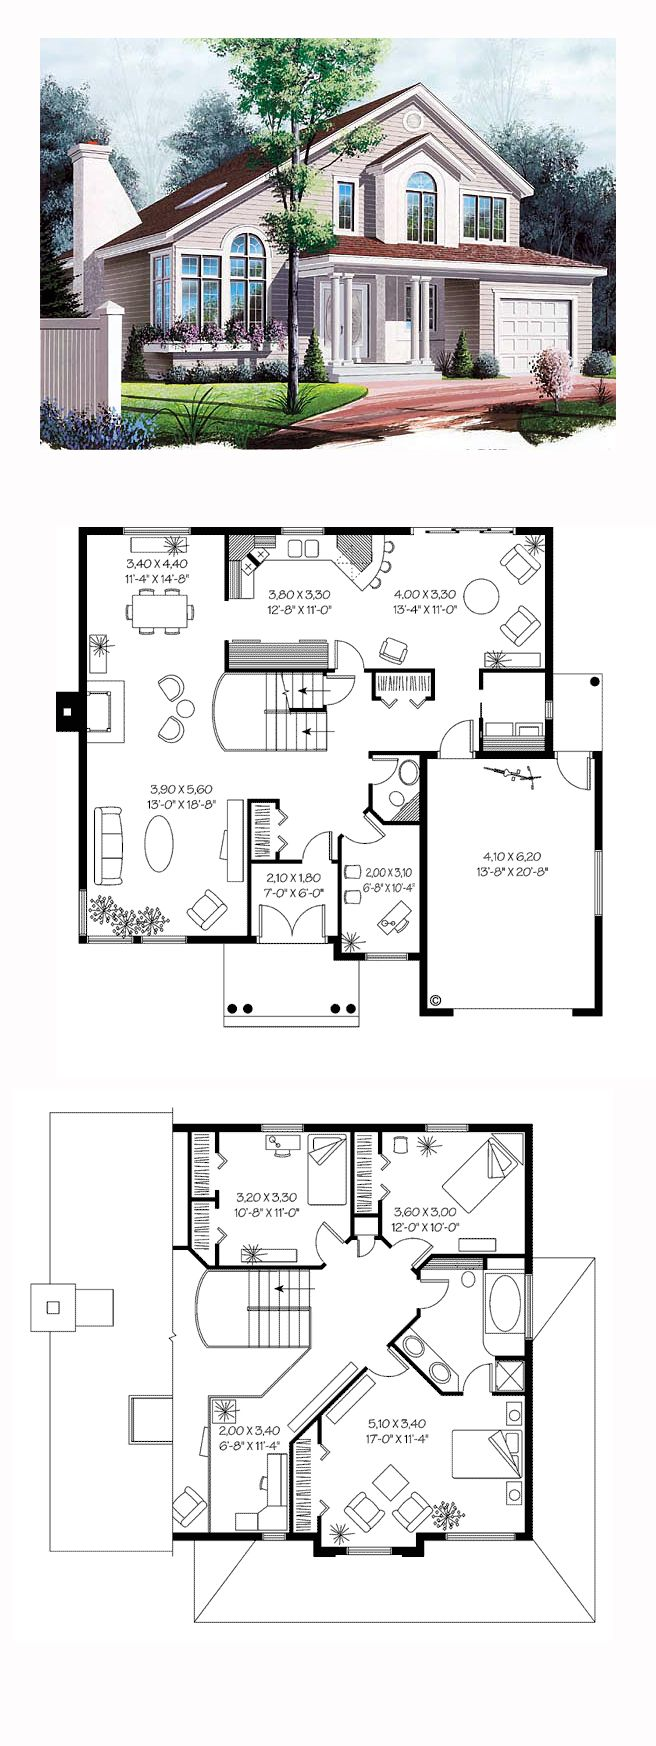 45 best saltbox house plans images on pinterest saltbox On saltbox house floor plans